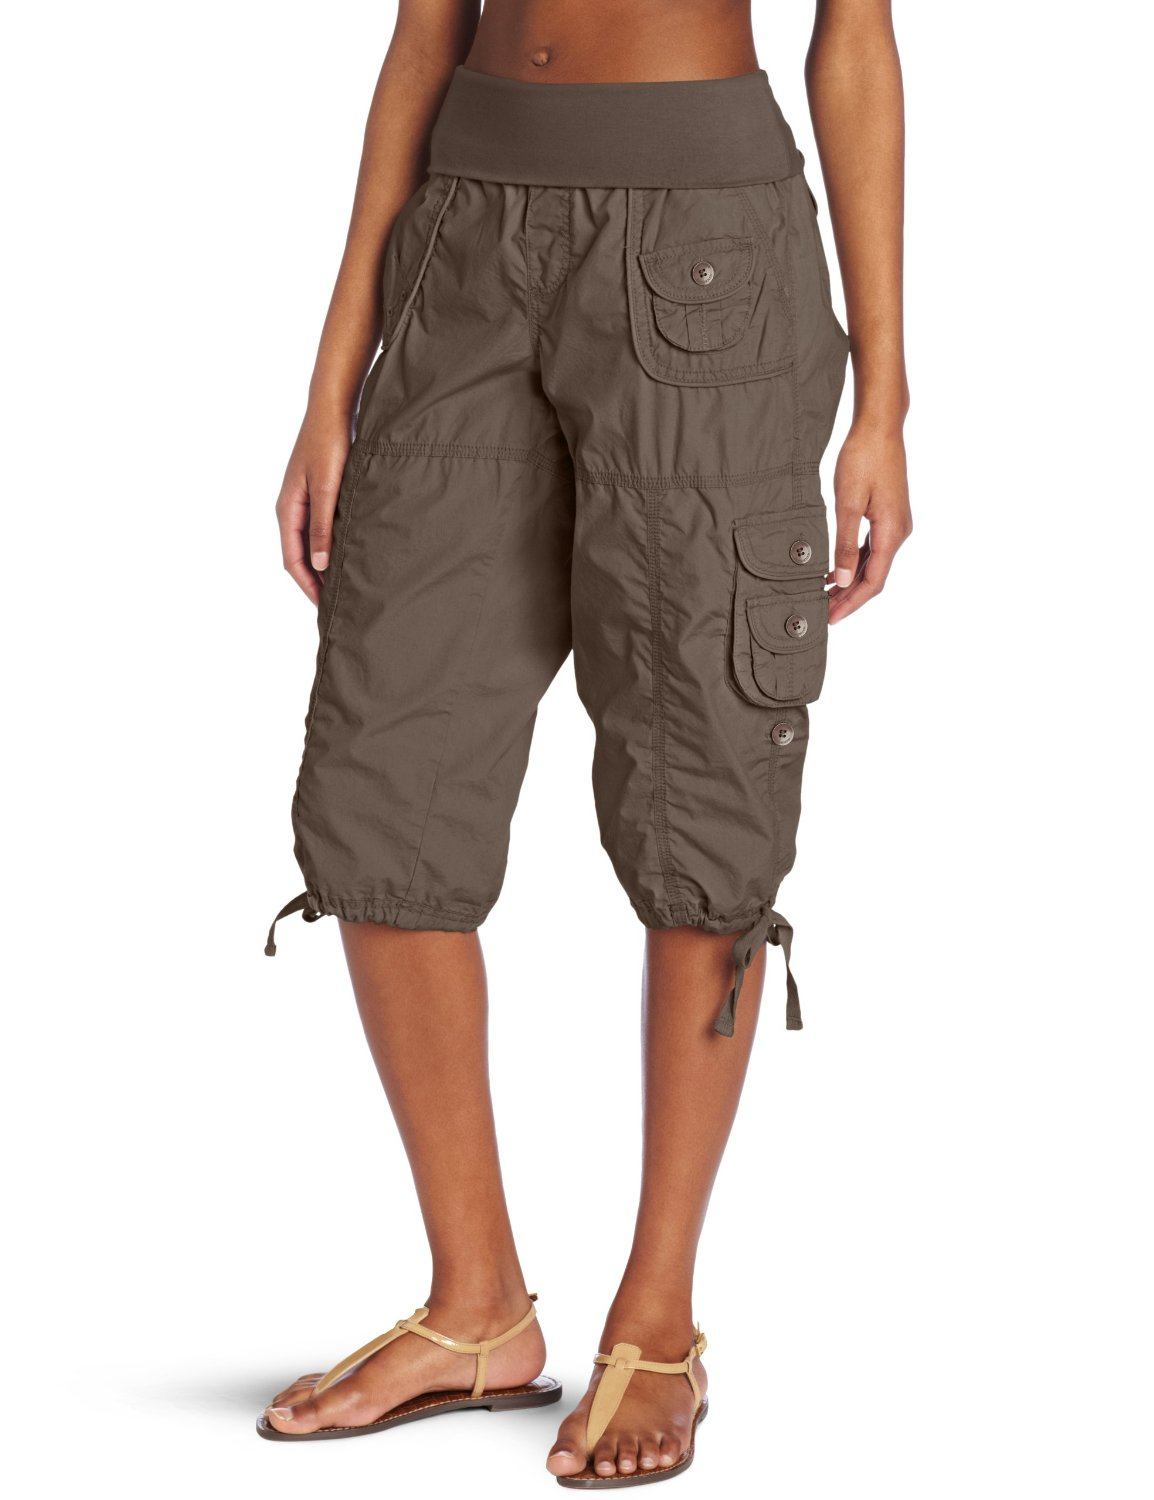 Fantastic Cargo Short? Oh, No No No Camo Cargo Short? GIRL STOP Because Nearly